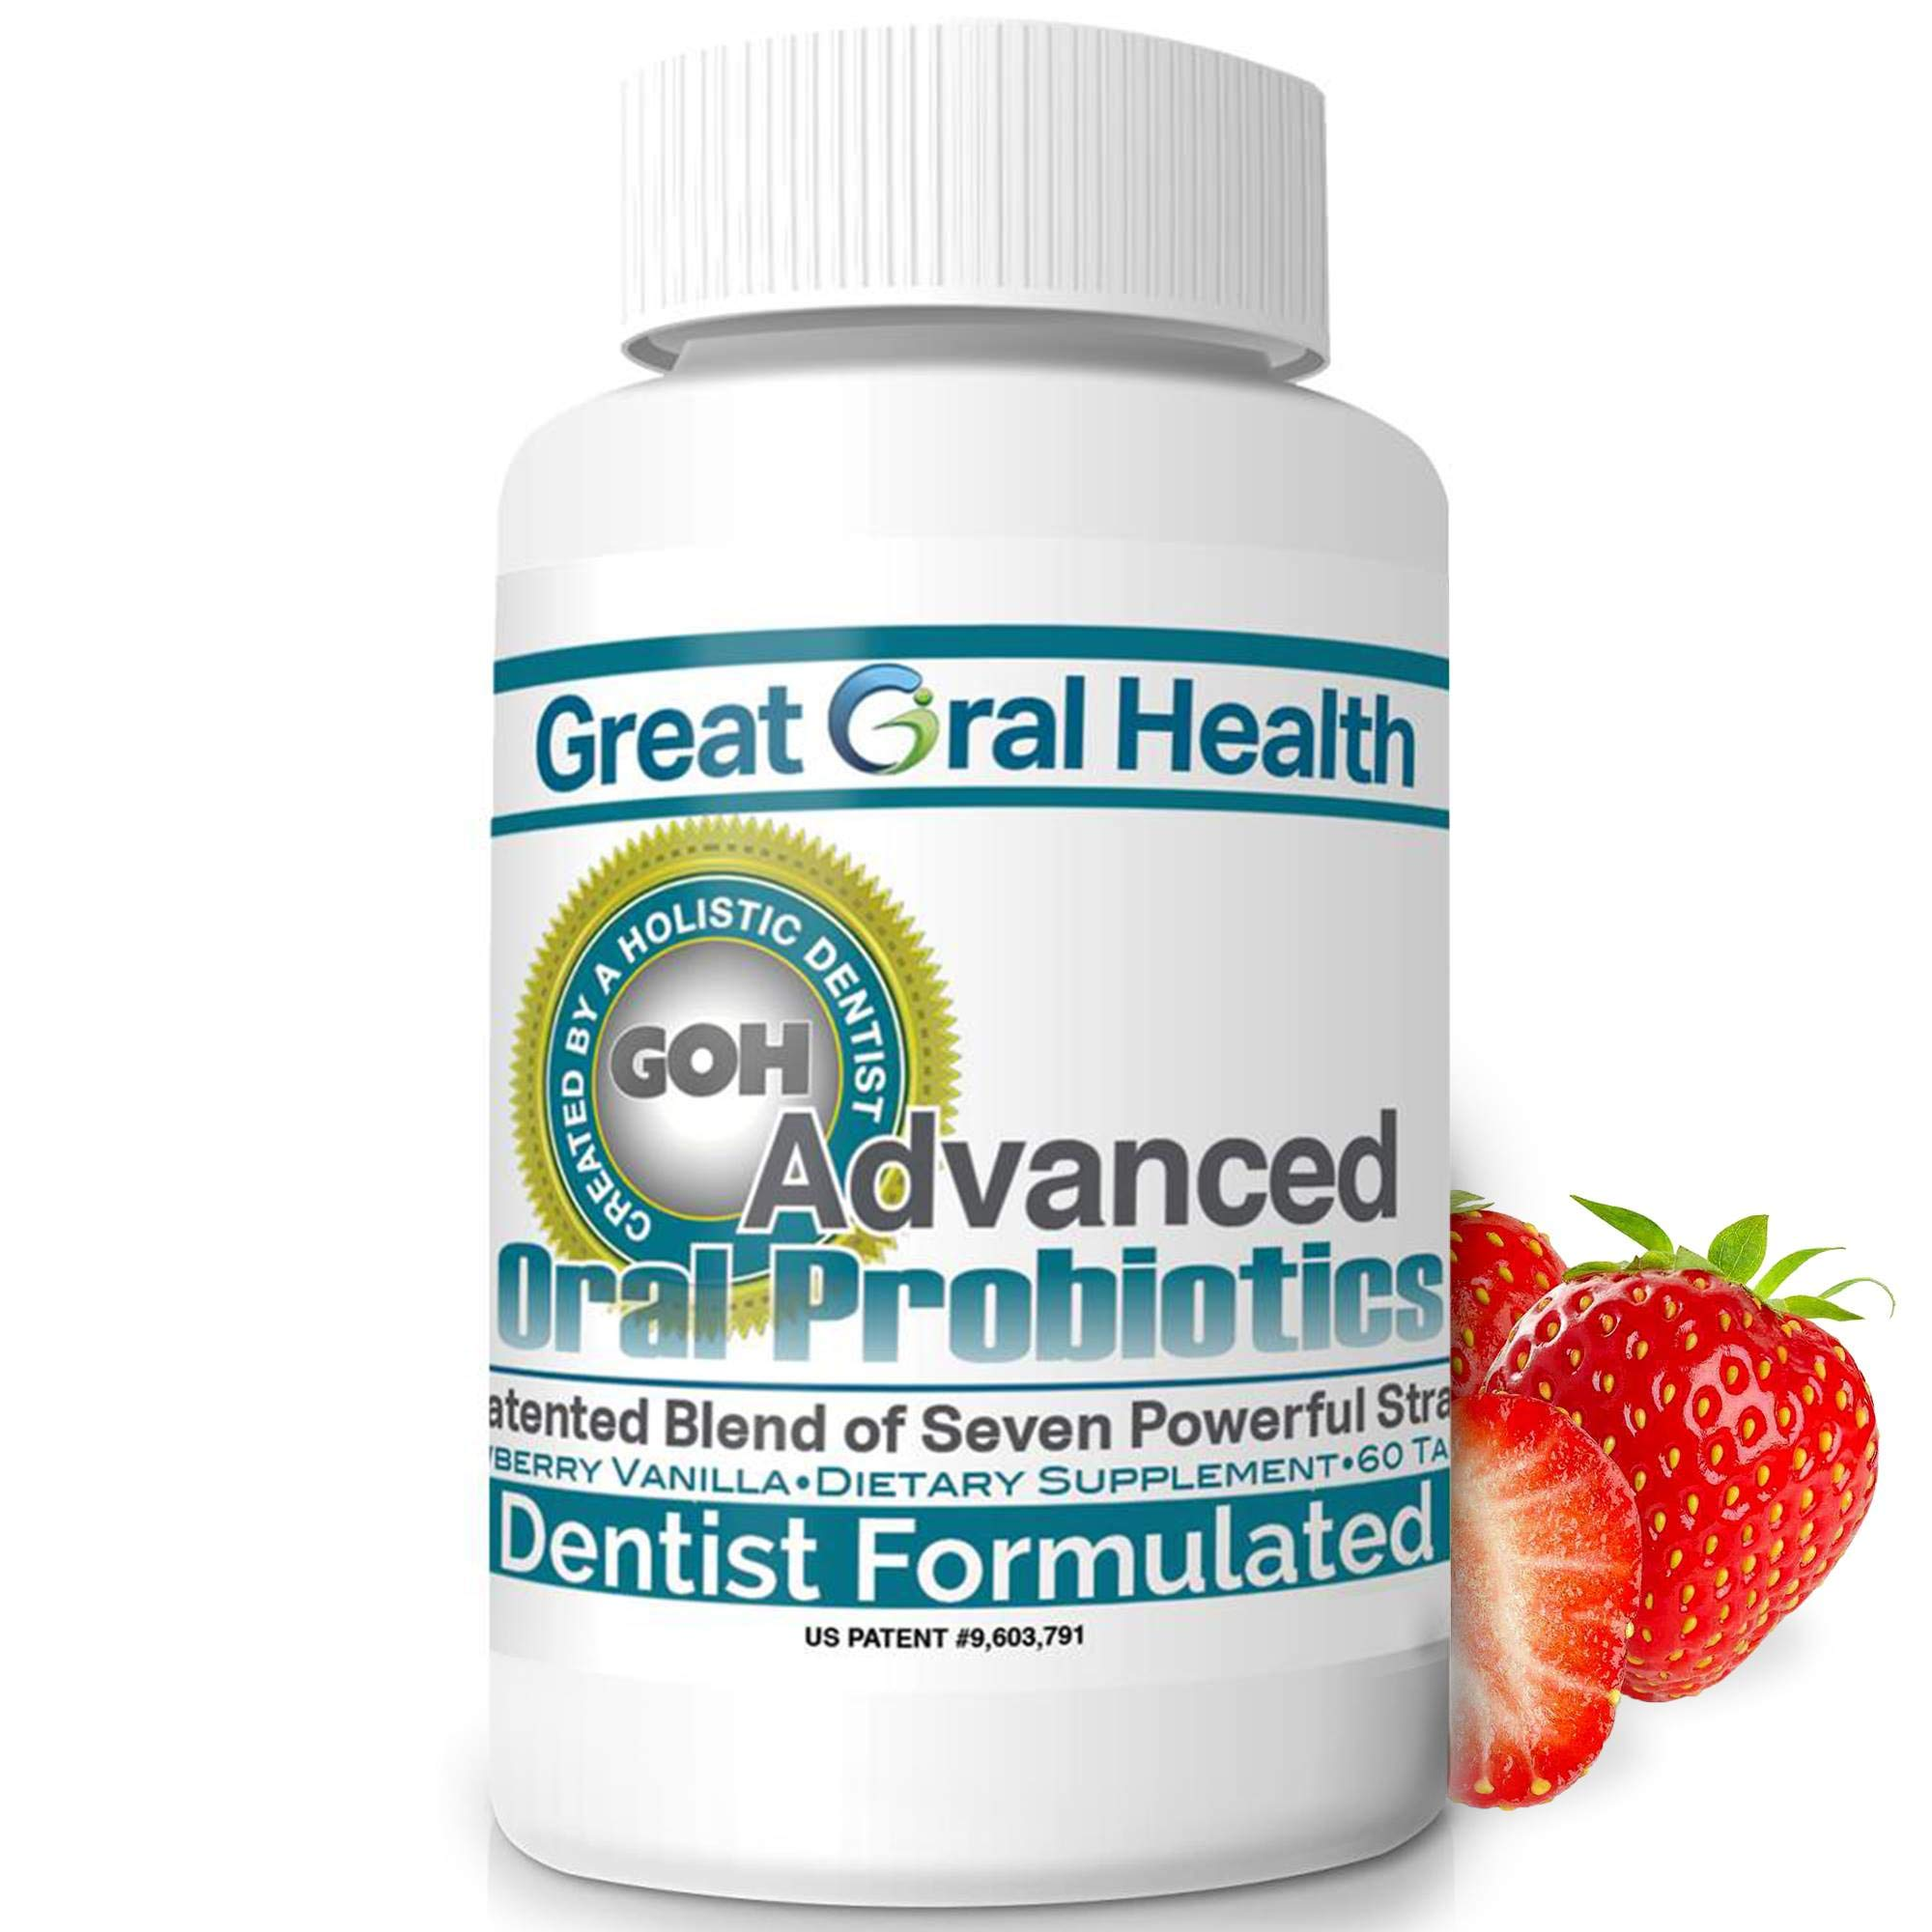 Chewable Oral Probiotics for Mouth — Oral Probiotic — Gum Disease Gingivitis & Bad Breath Treatment Supplement w/BLIS K12 M18 — Dentist Formulated 60 Lozenge Strawberry Vanilla eBook Included